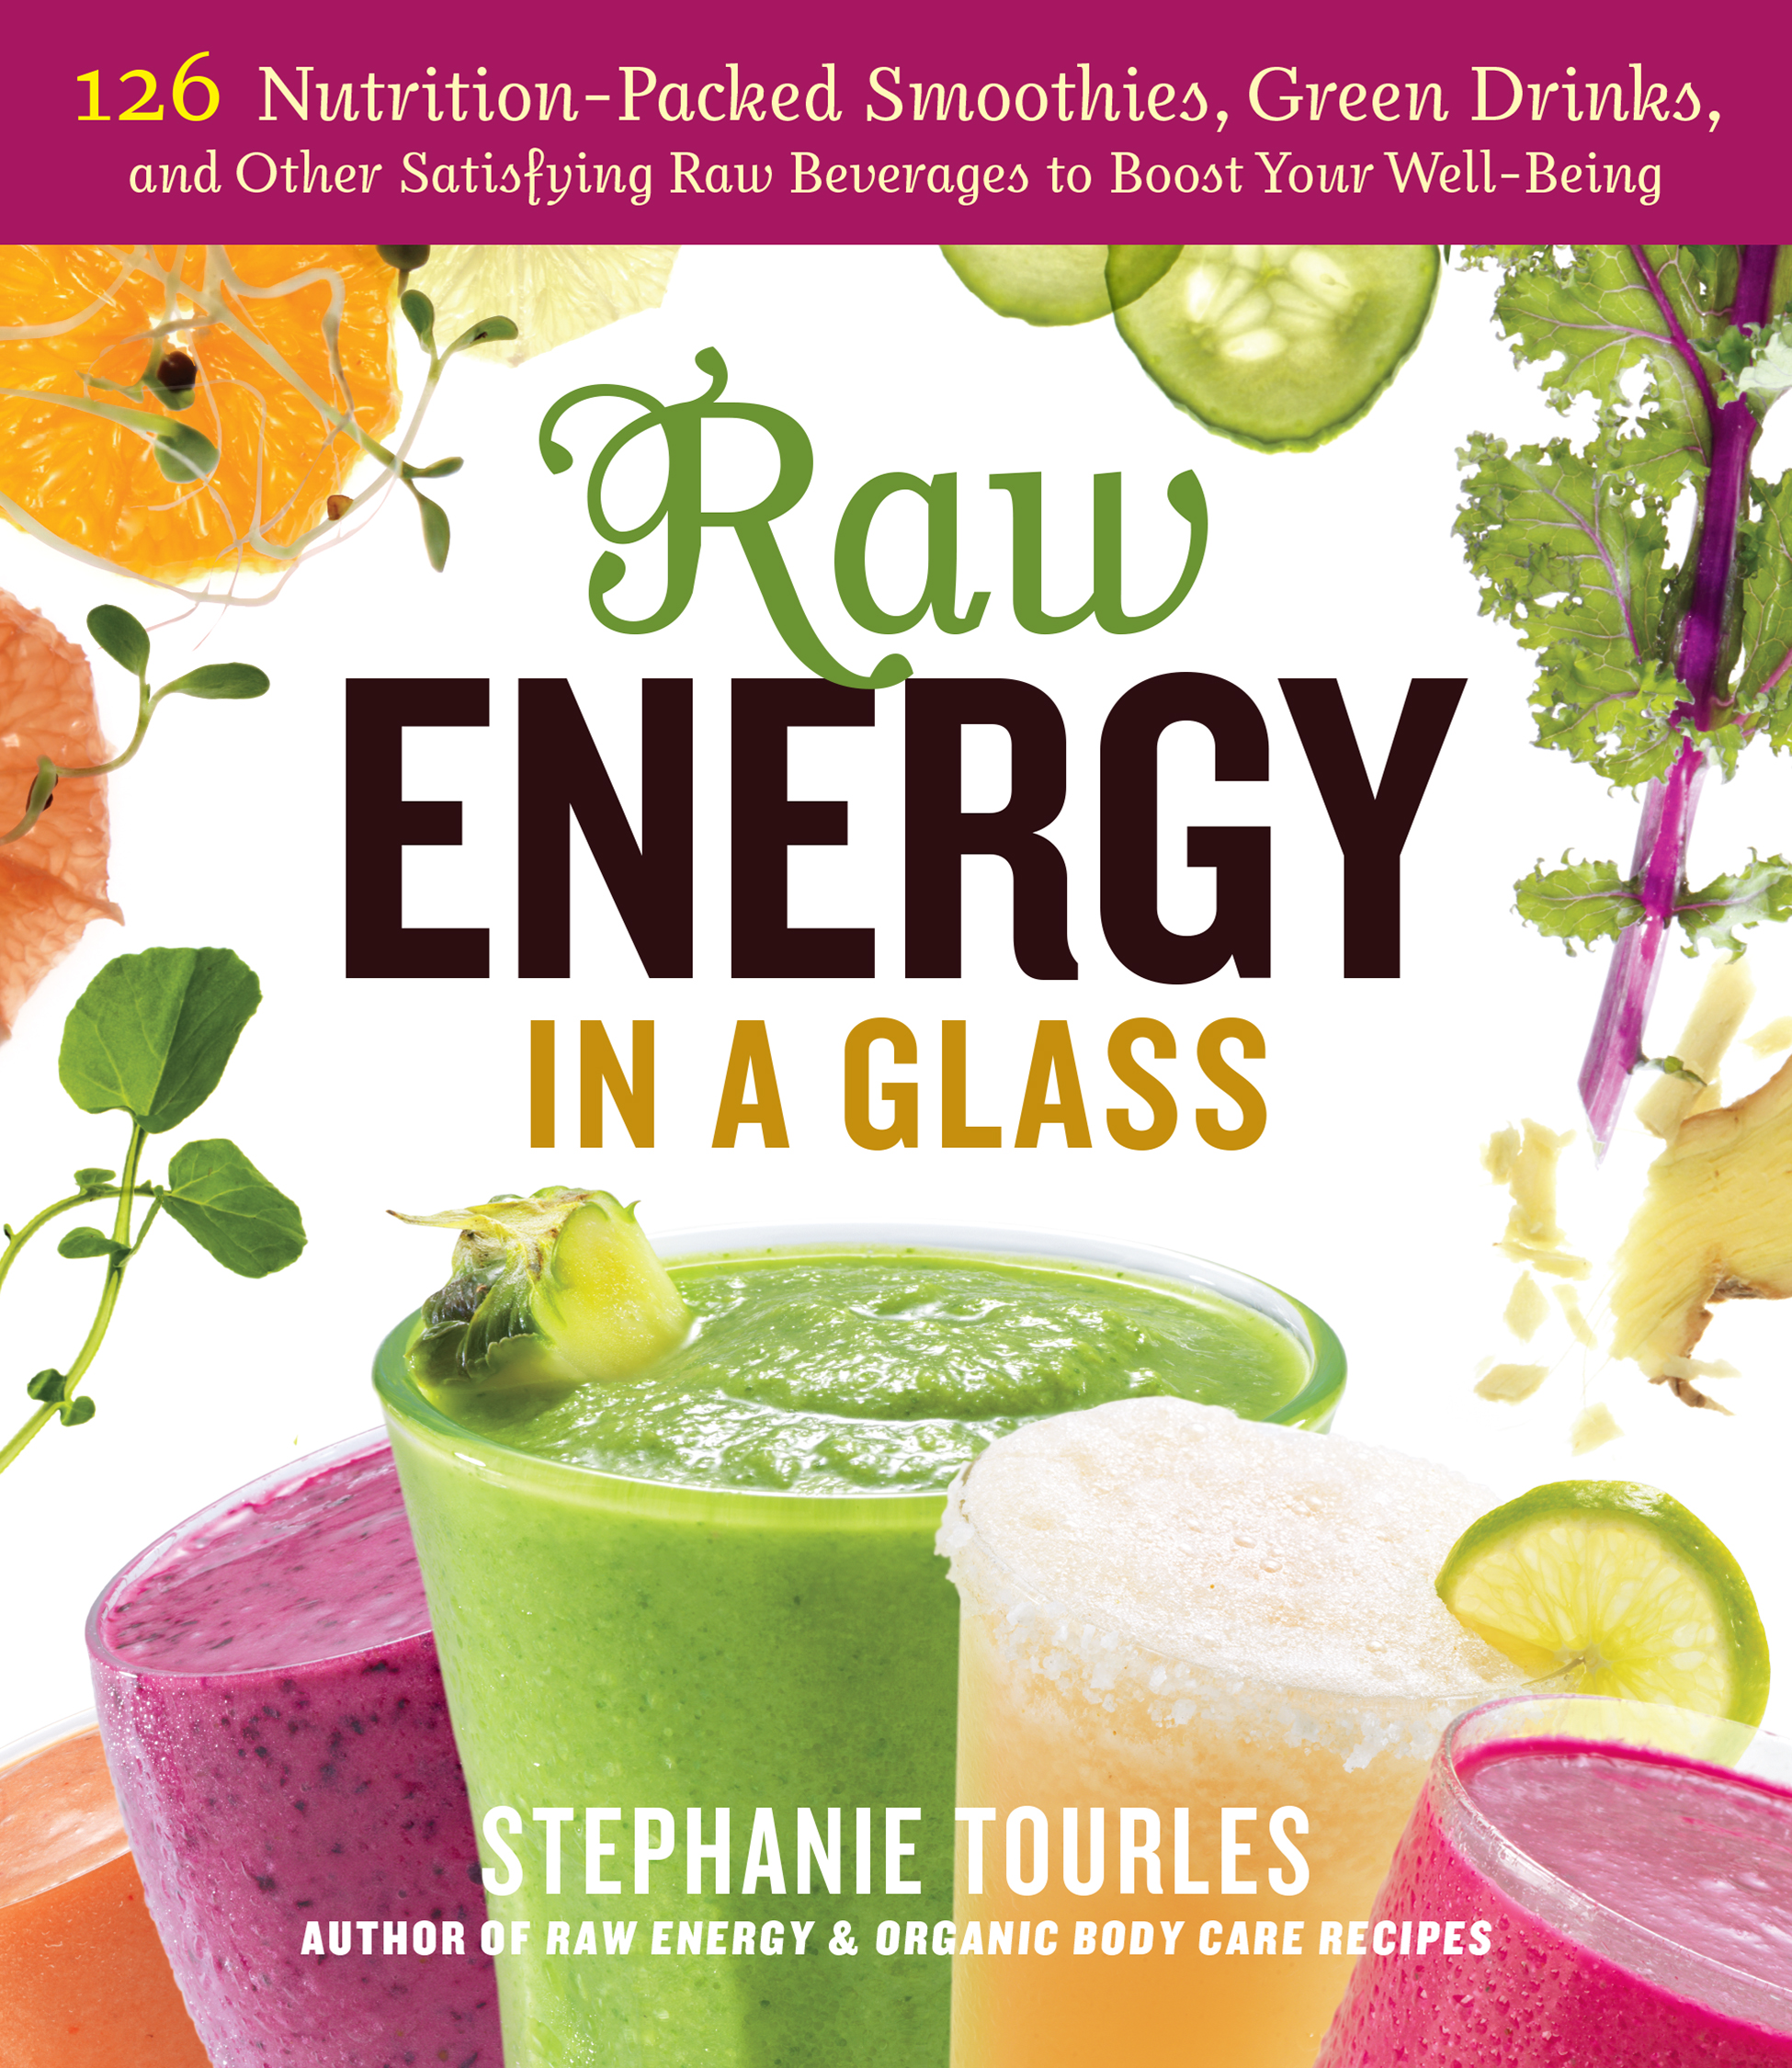 Raw Energy in a Glass 126 Nutrition-Packed Smoothies, Green Drinks, and Other Satisfying Raw Beverages to Boost Your Well-Being - Stephanie L. Tourles